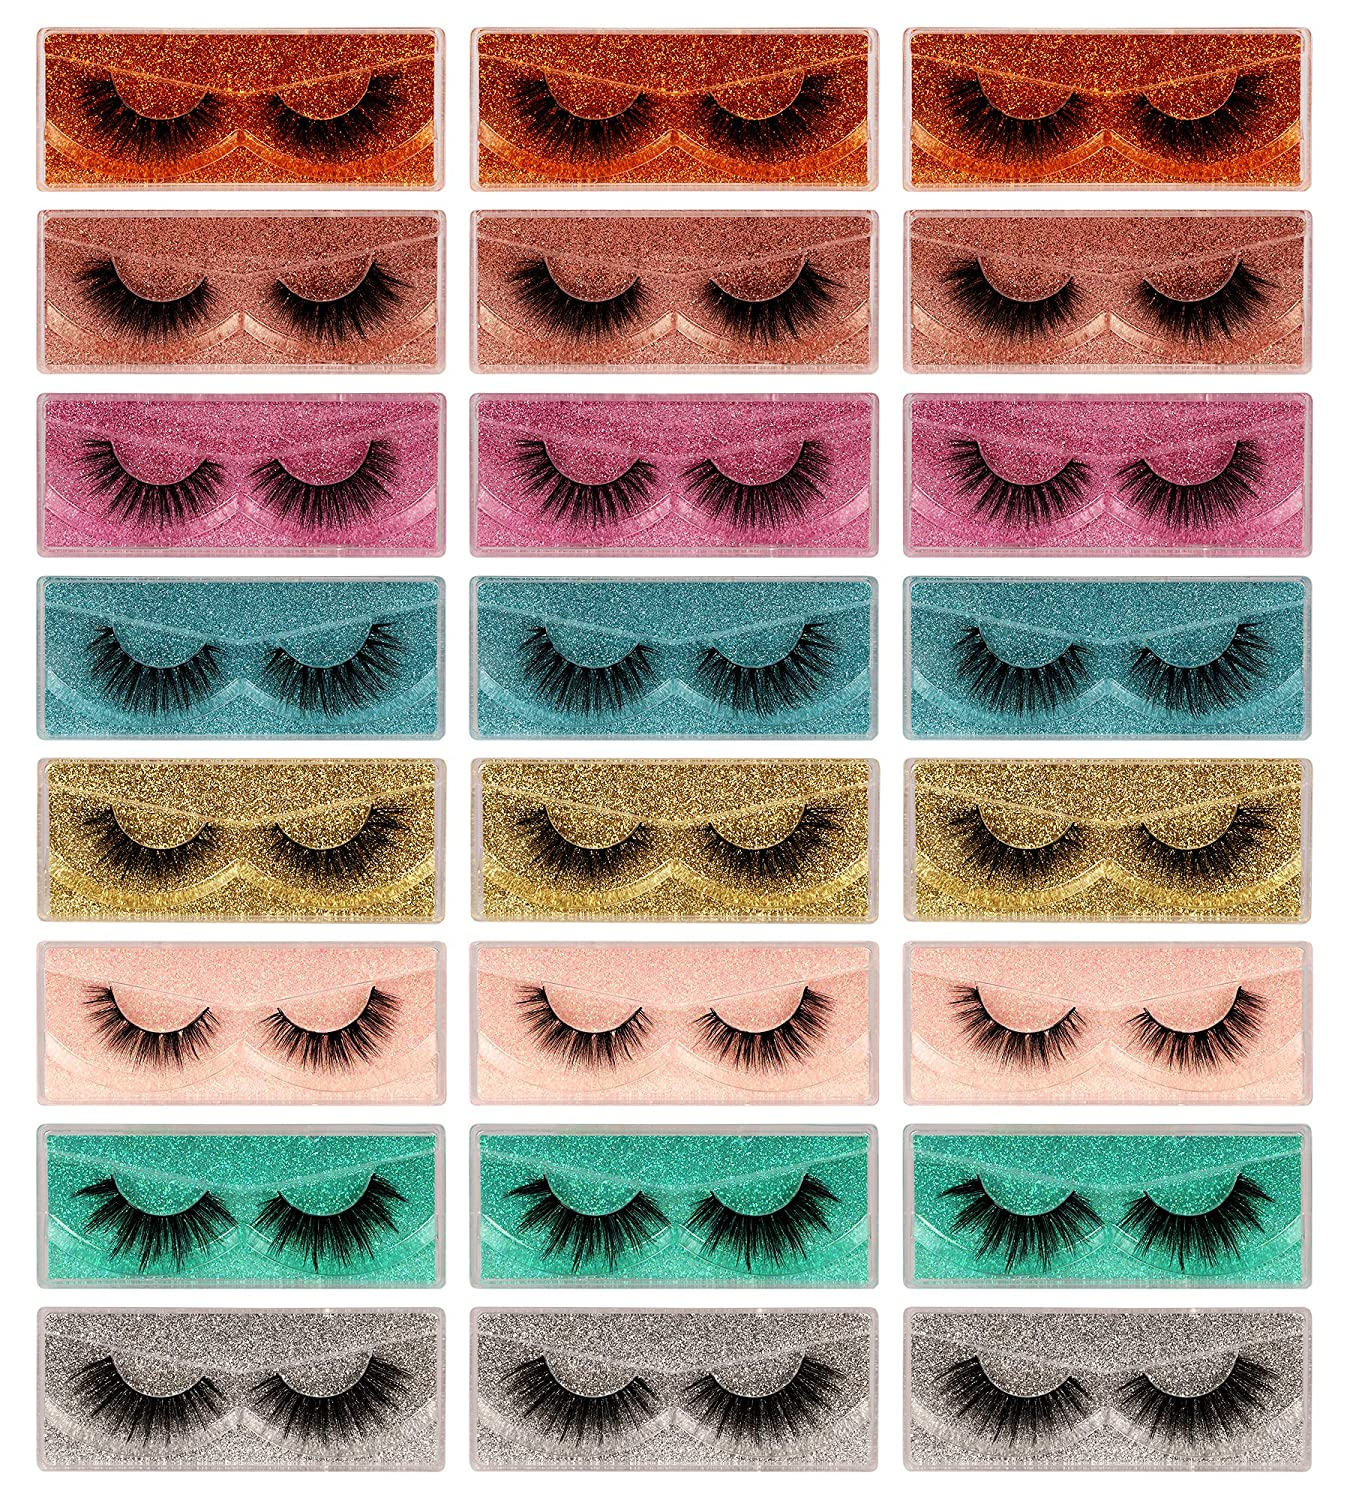 Newcally Max 58% OFF OFFer Lashes False Eyelashes 24 Mink Style Pack 8 Faux